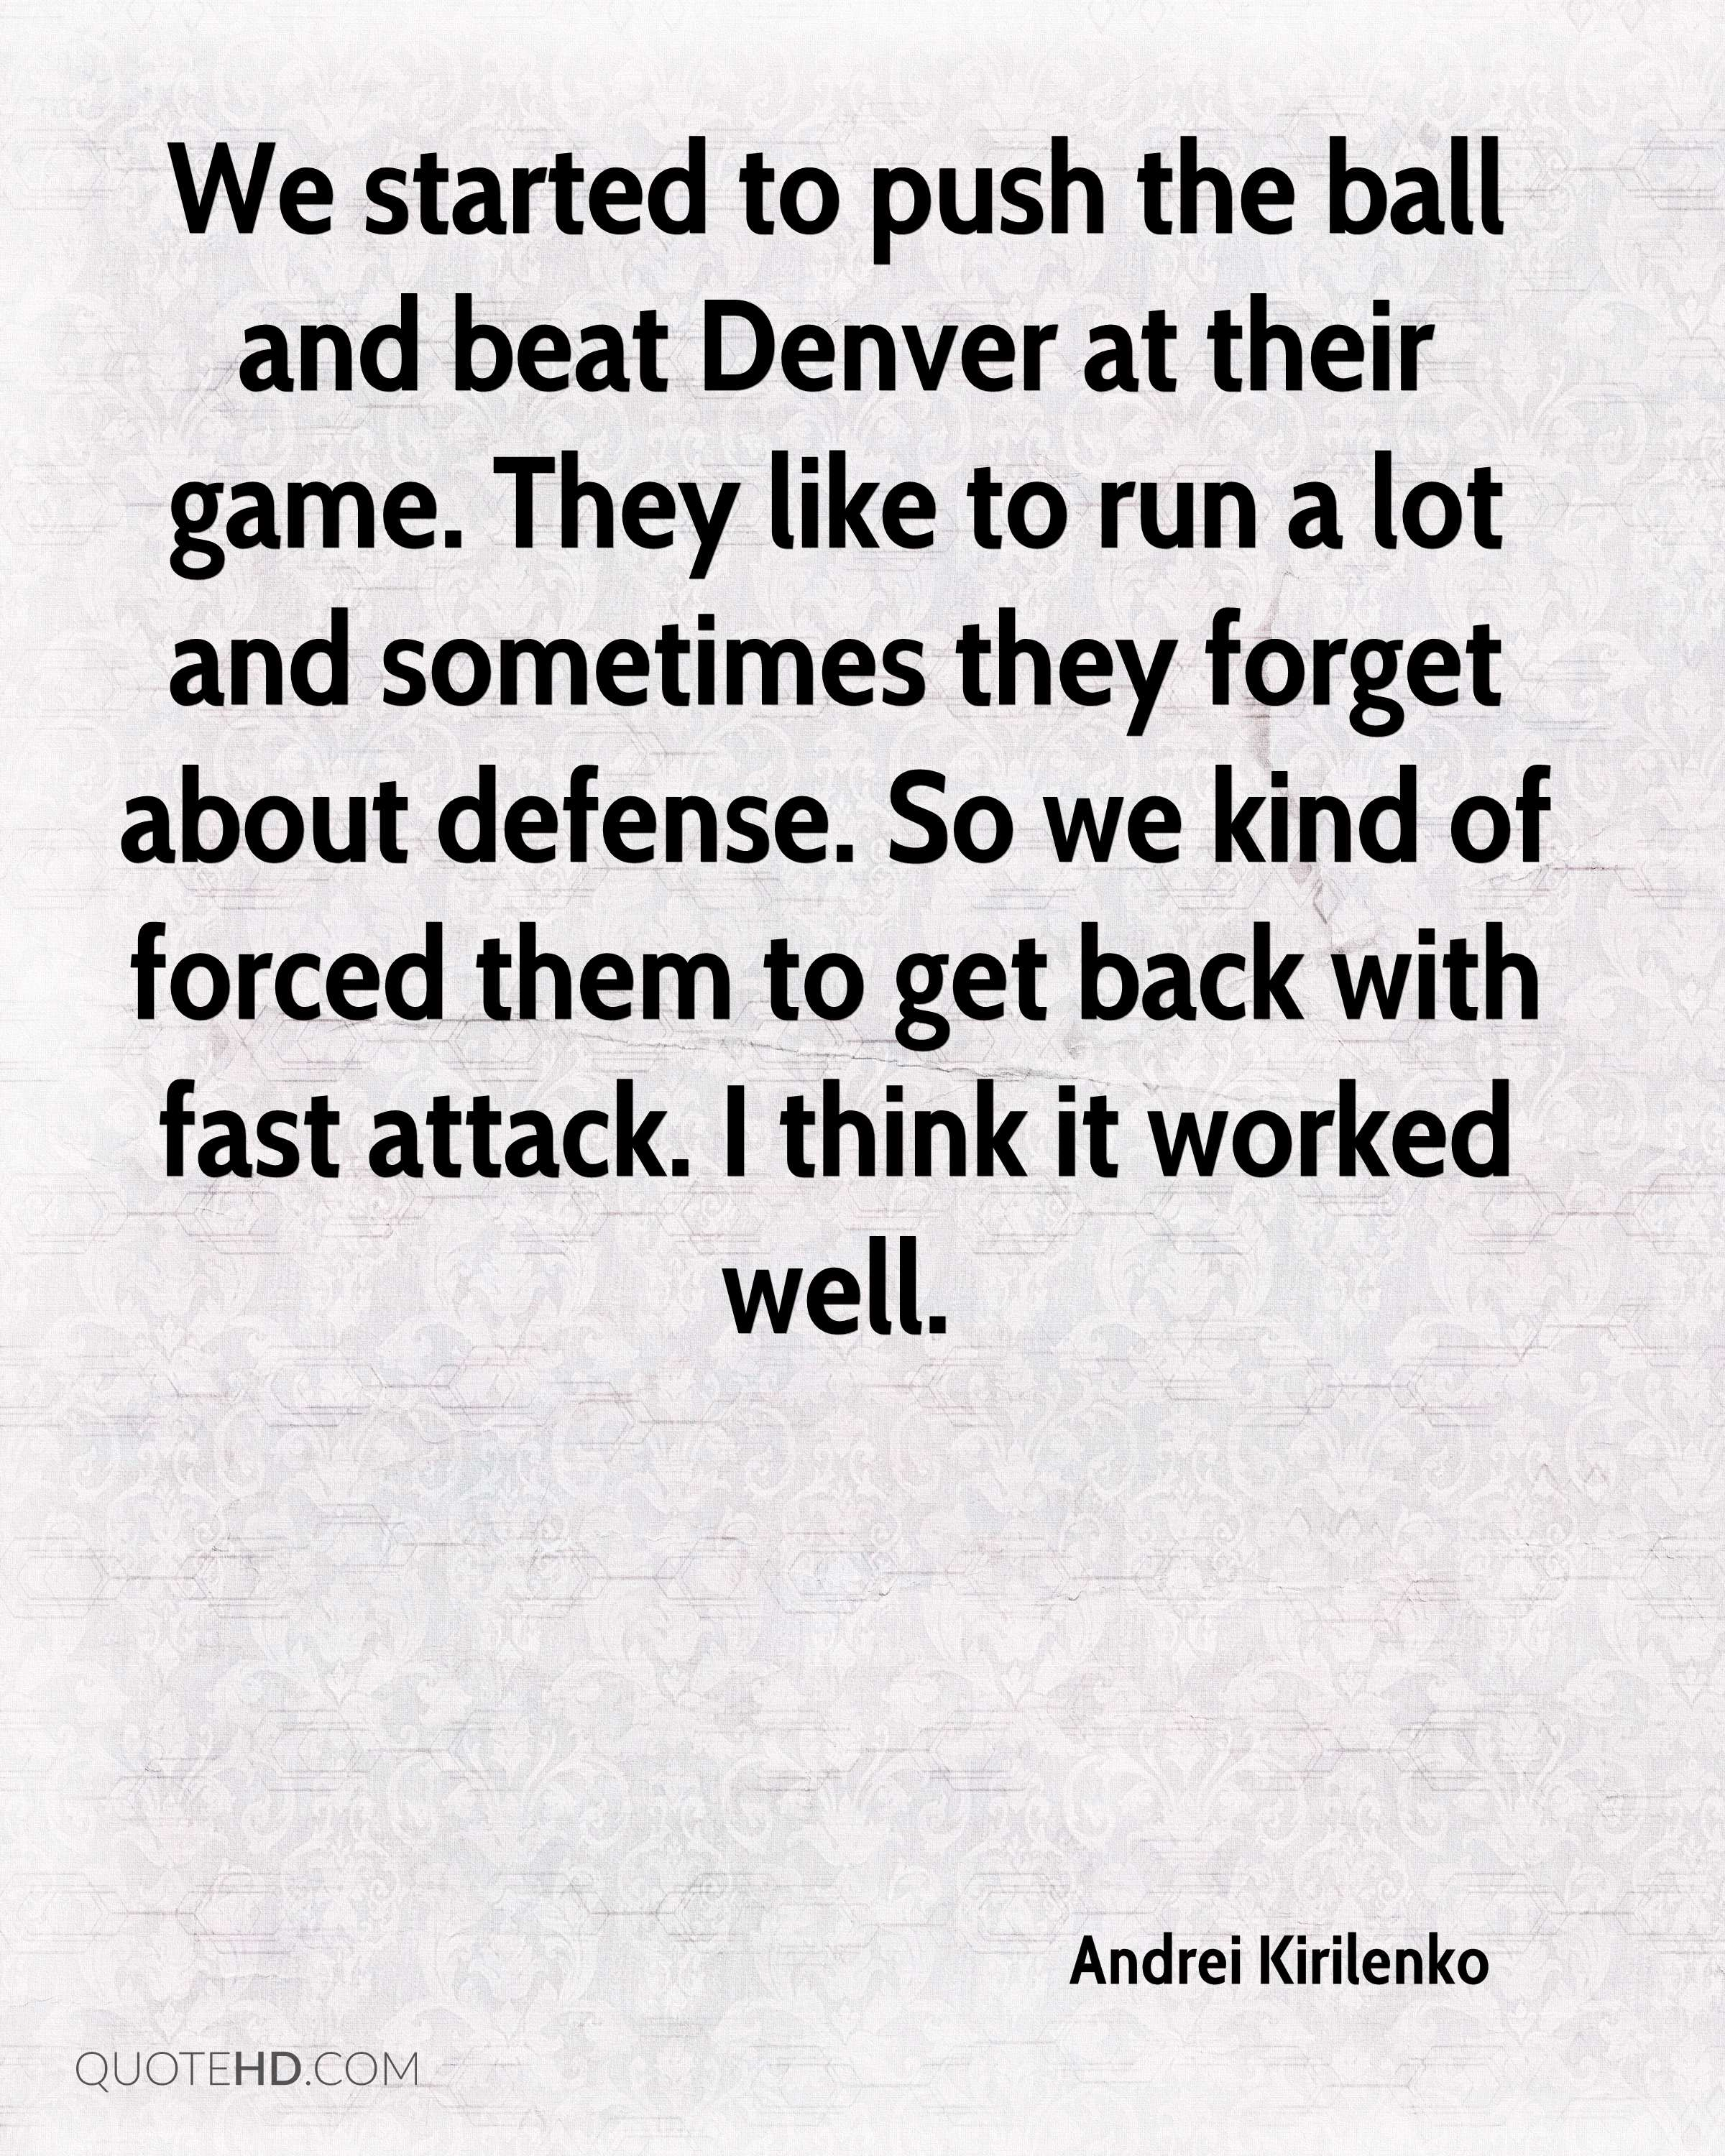 We started to push the ball and beat Denver at their game. They like to run a lot and sometimes they forget about defense. So we kind of forced them to get back with fast attack. I think it worked well.